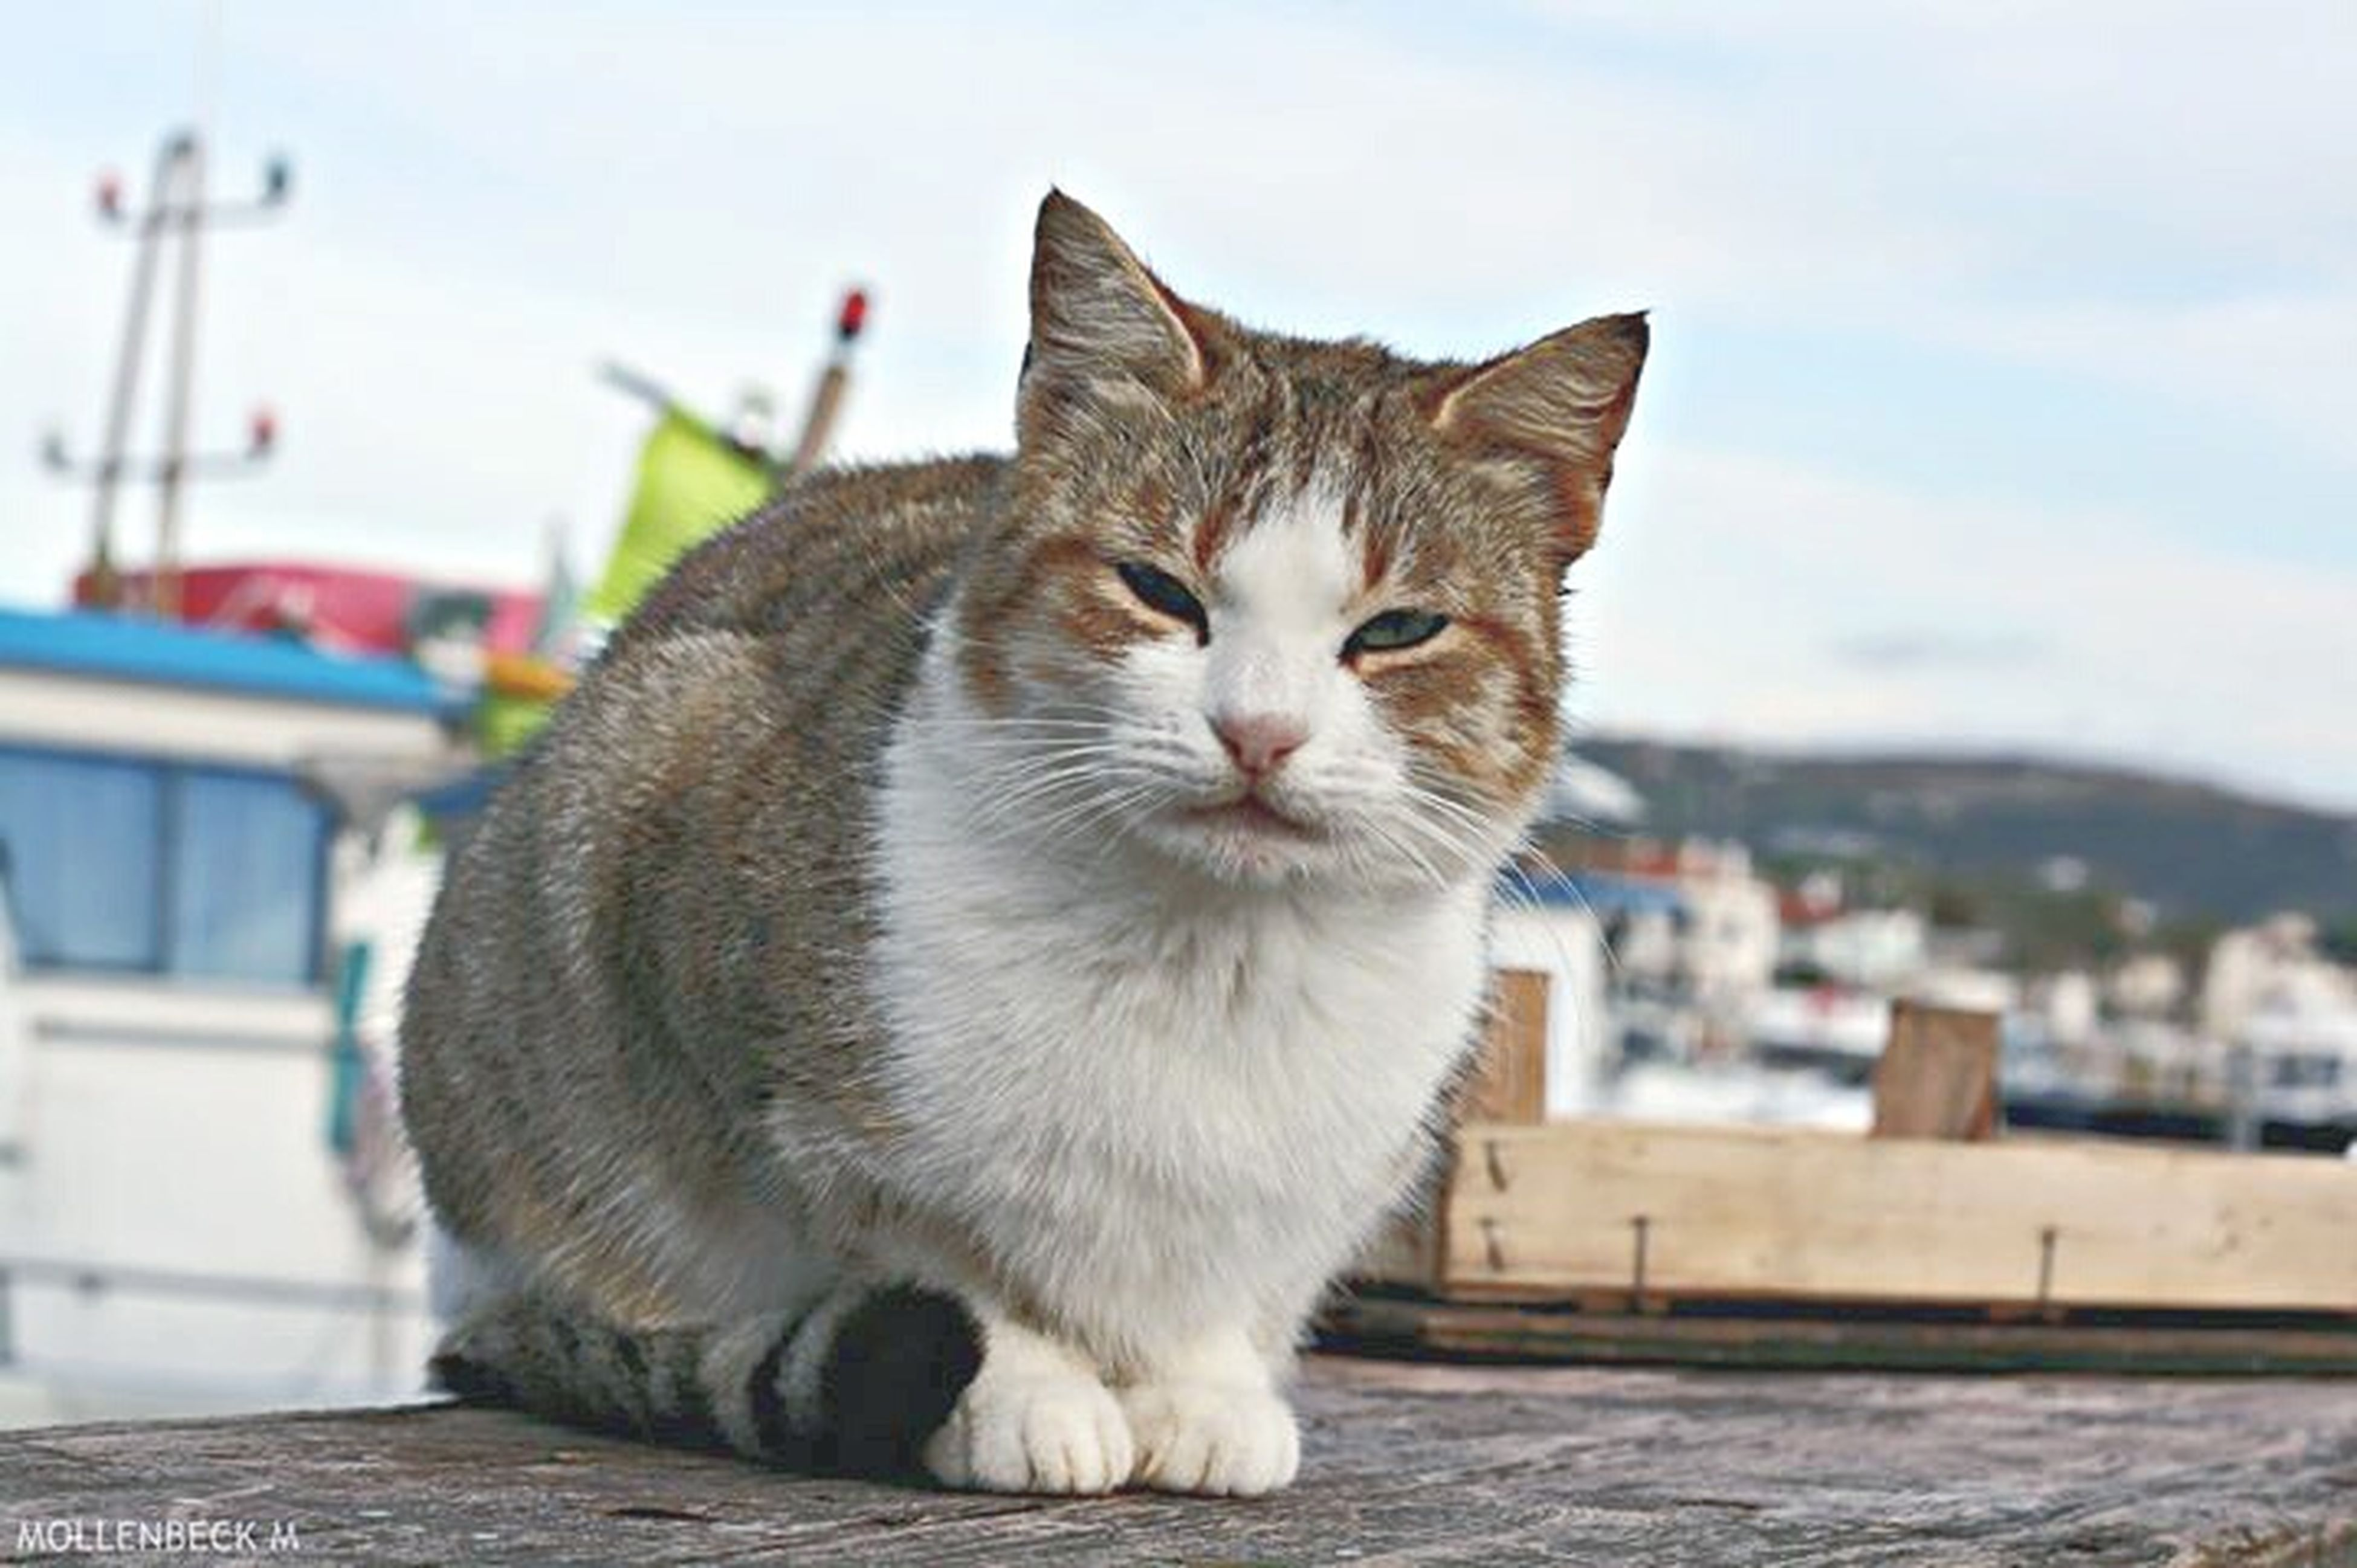 domestic cat, domestic animals, pets, cat, one animal, animal themes, mammal, feline, whisker, focus on foreground, sky, sitting, portrait, looking at camera, building exterior, built structure, relaxation, close-up, street